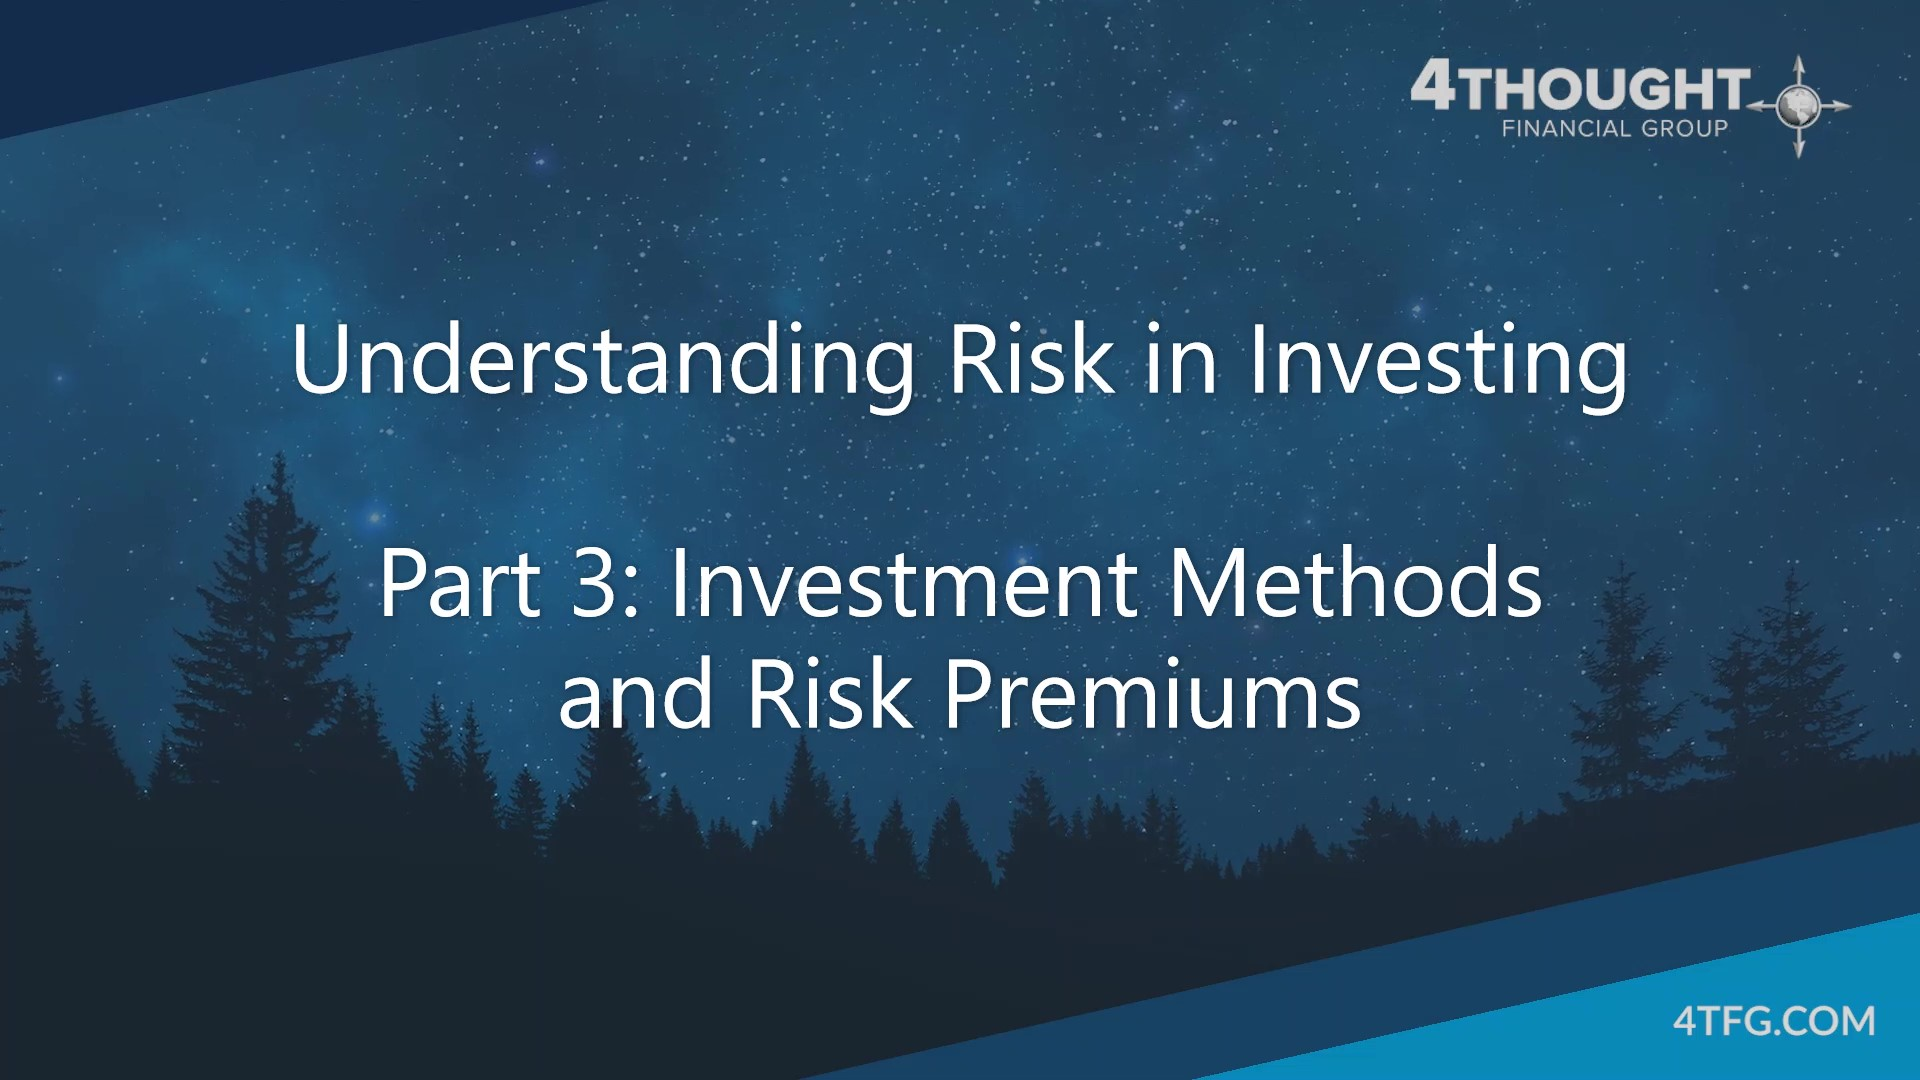 Understanding Risk in Investing - Part 3 - Investment Methods and Risk Premiums